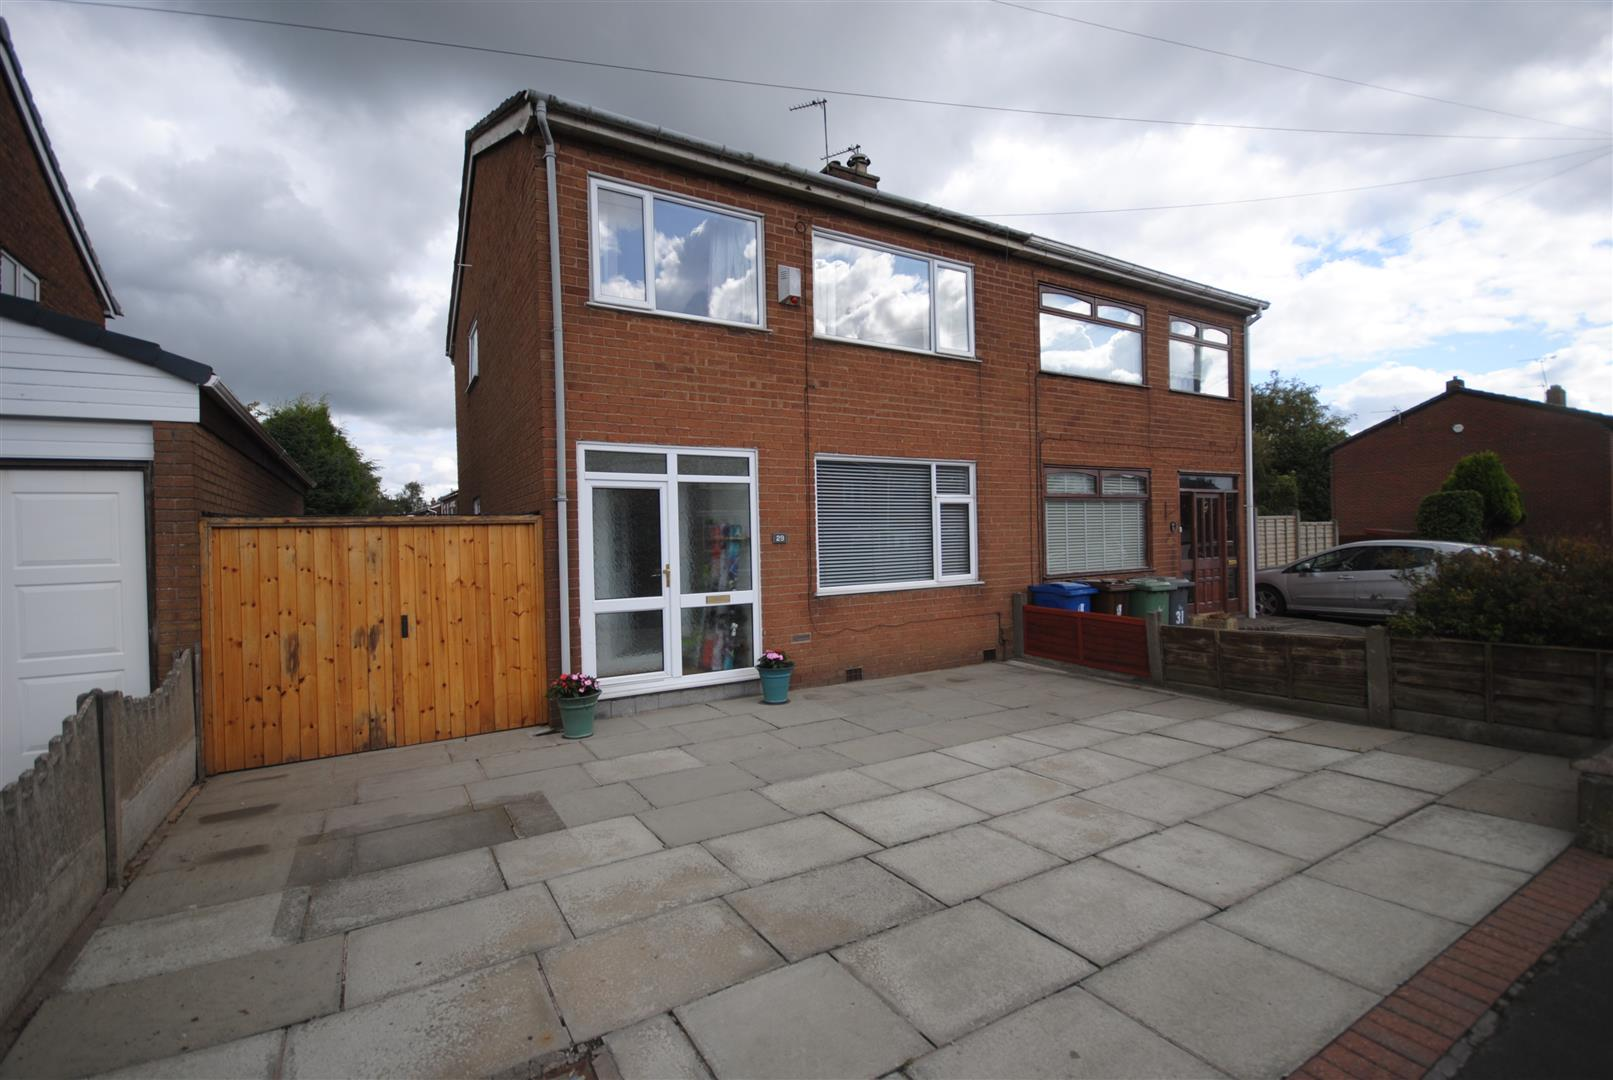 3 Bedrooms Semi Detached House for sale in Clough Grove, Ashton-In-Makerfield, Wigan